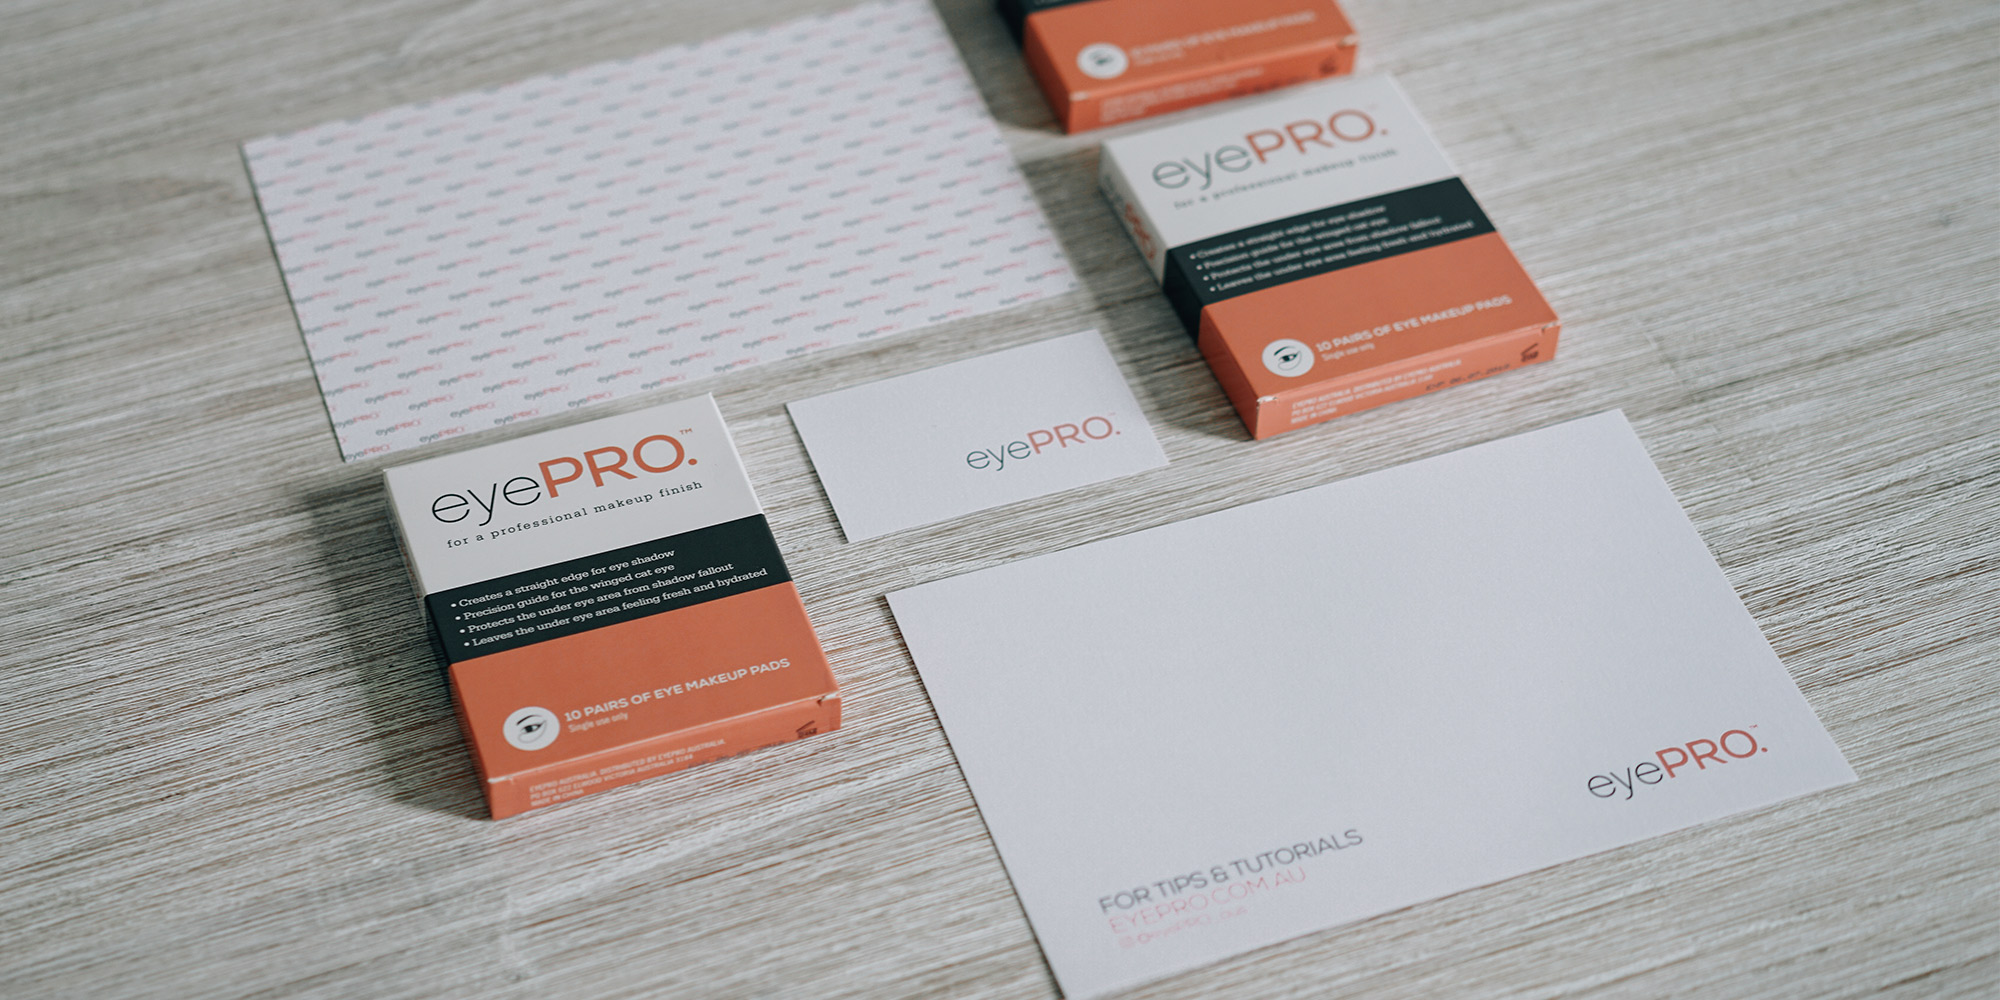 eyePRO - Packaging and Thank You